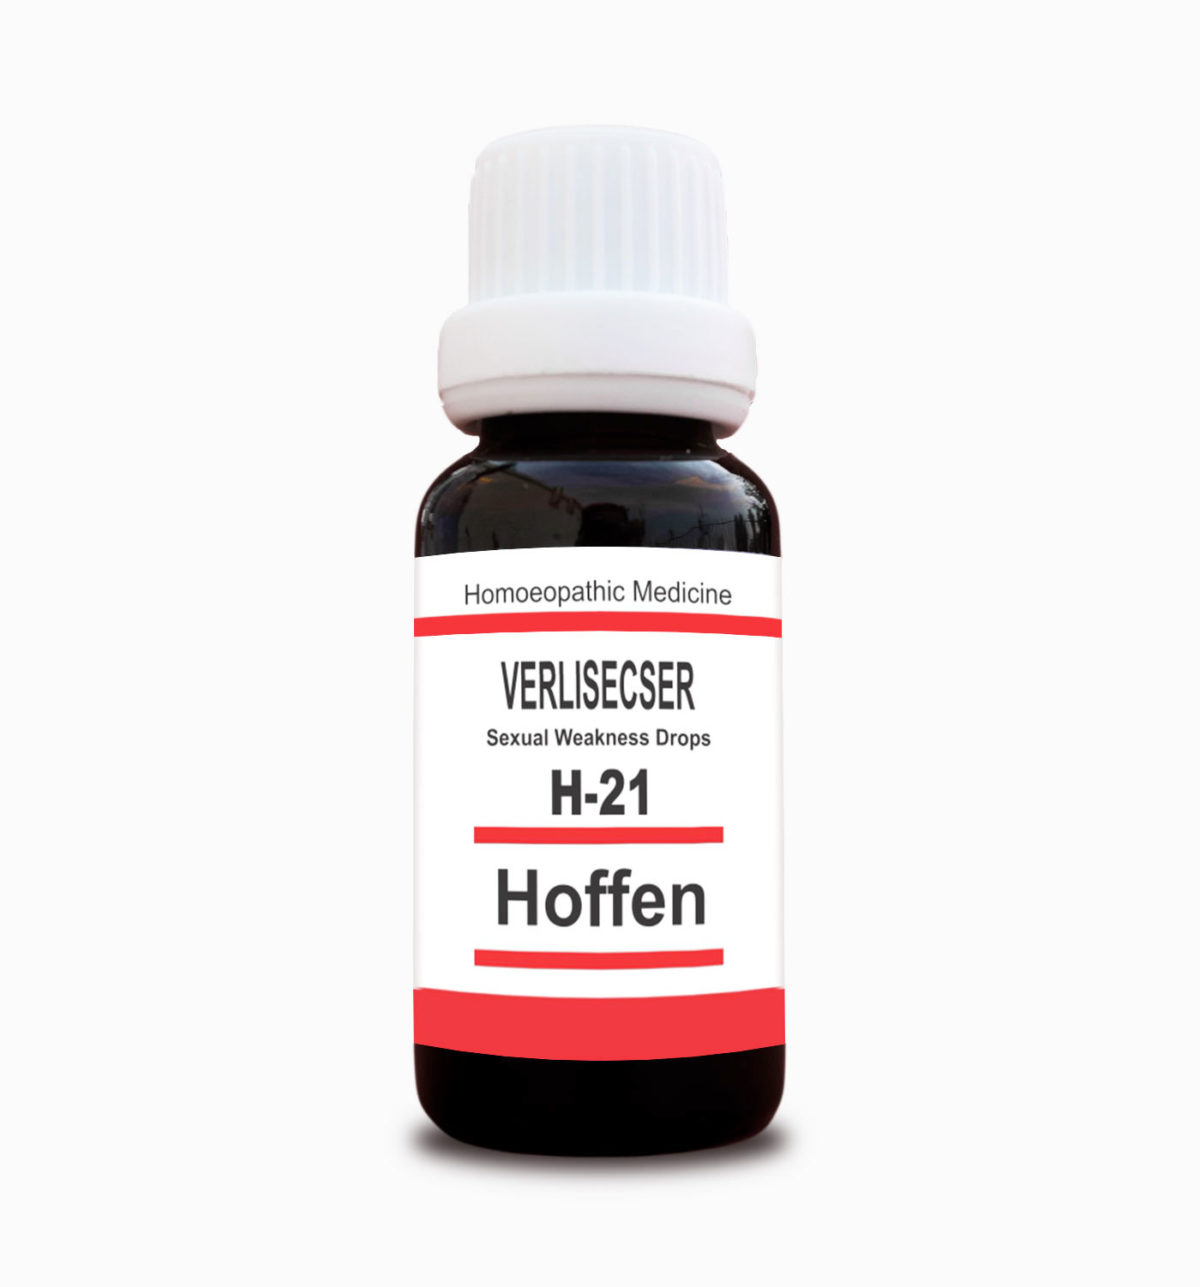 Homoeopathic preparation for disturbances of sexual function.